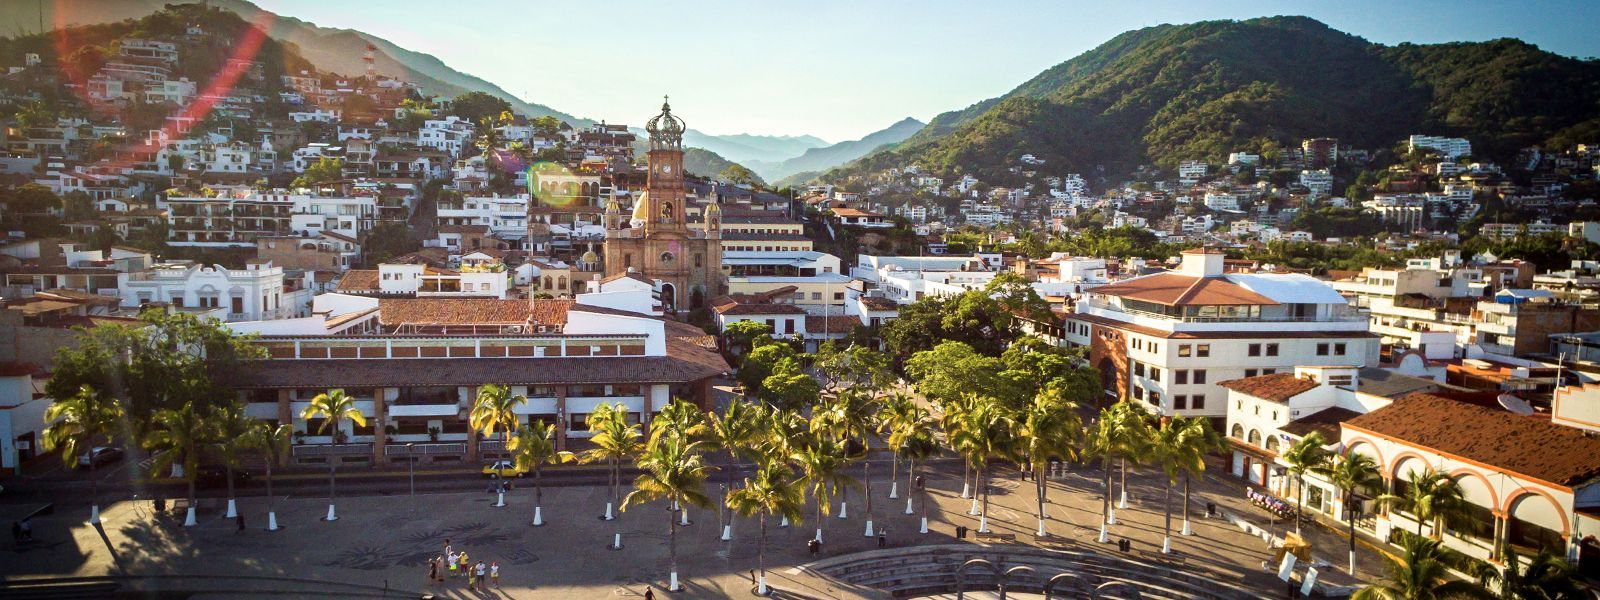 Walk-In Clinic & Urgent Care in Downtown Puerto Vallarta